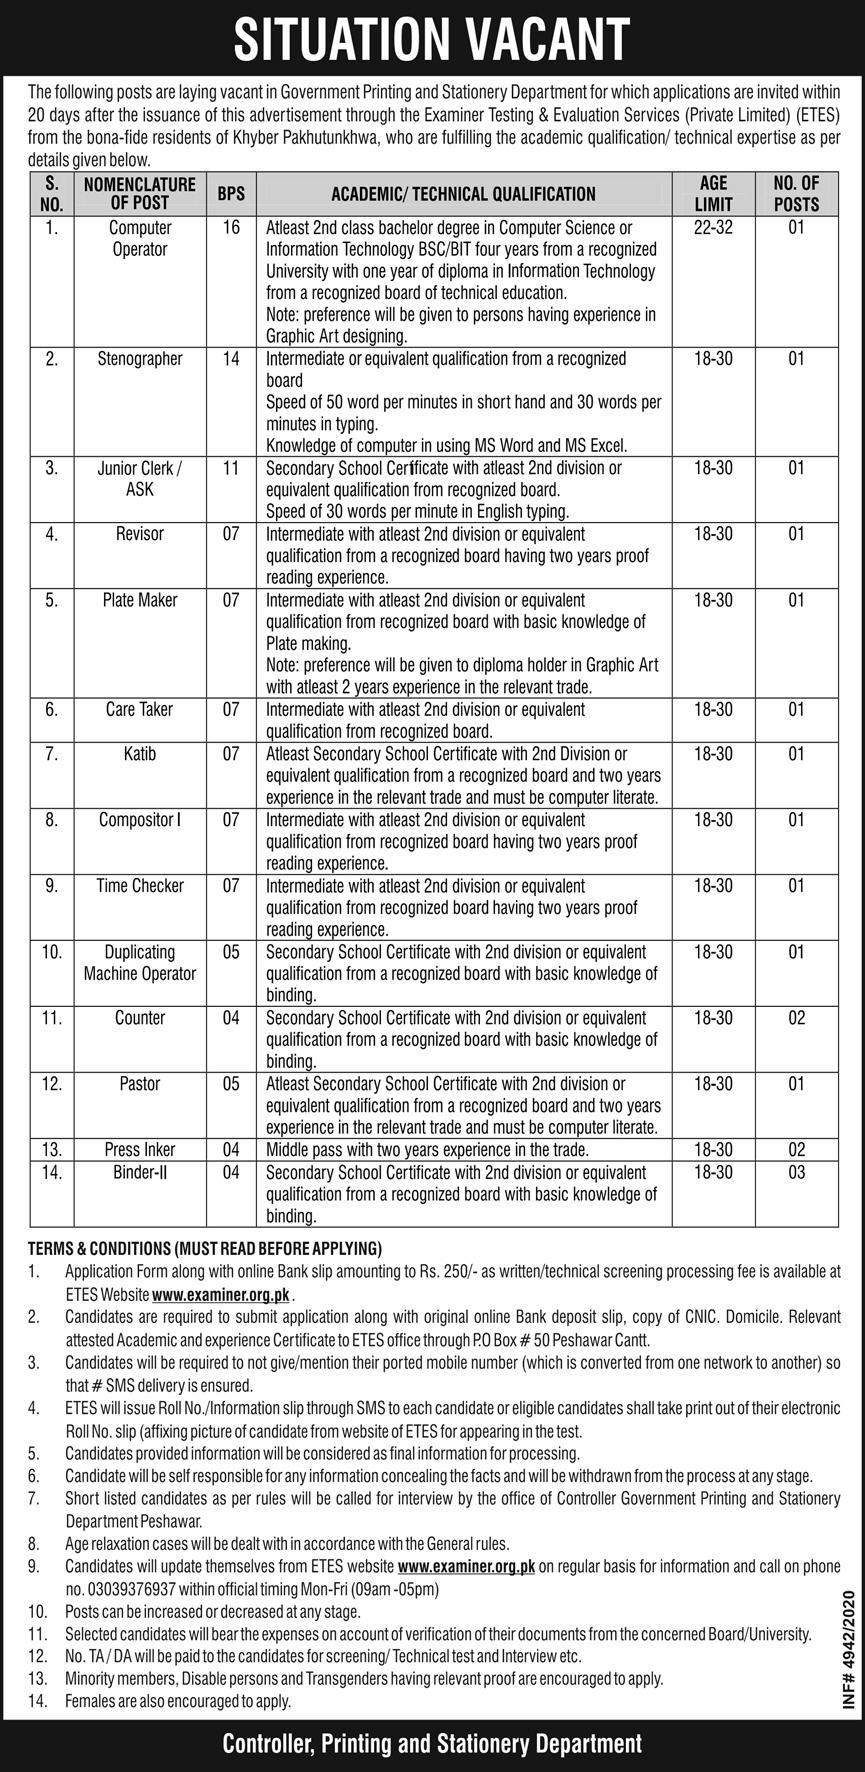 Govt Printing Press Stationery Department Jobs ETES Test Roll No Slip